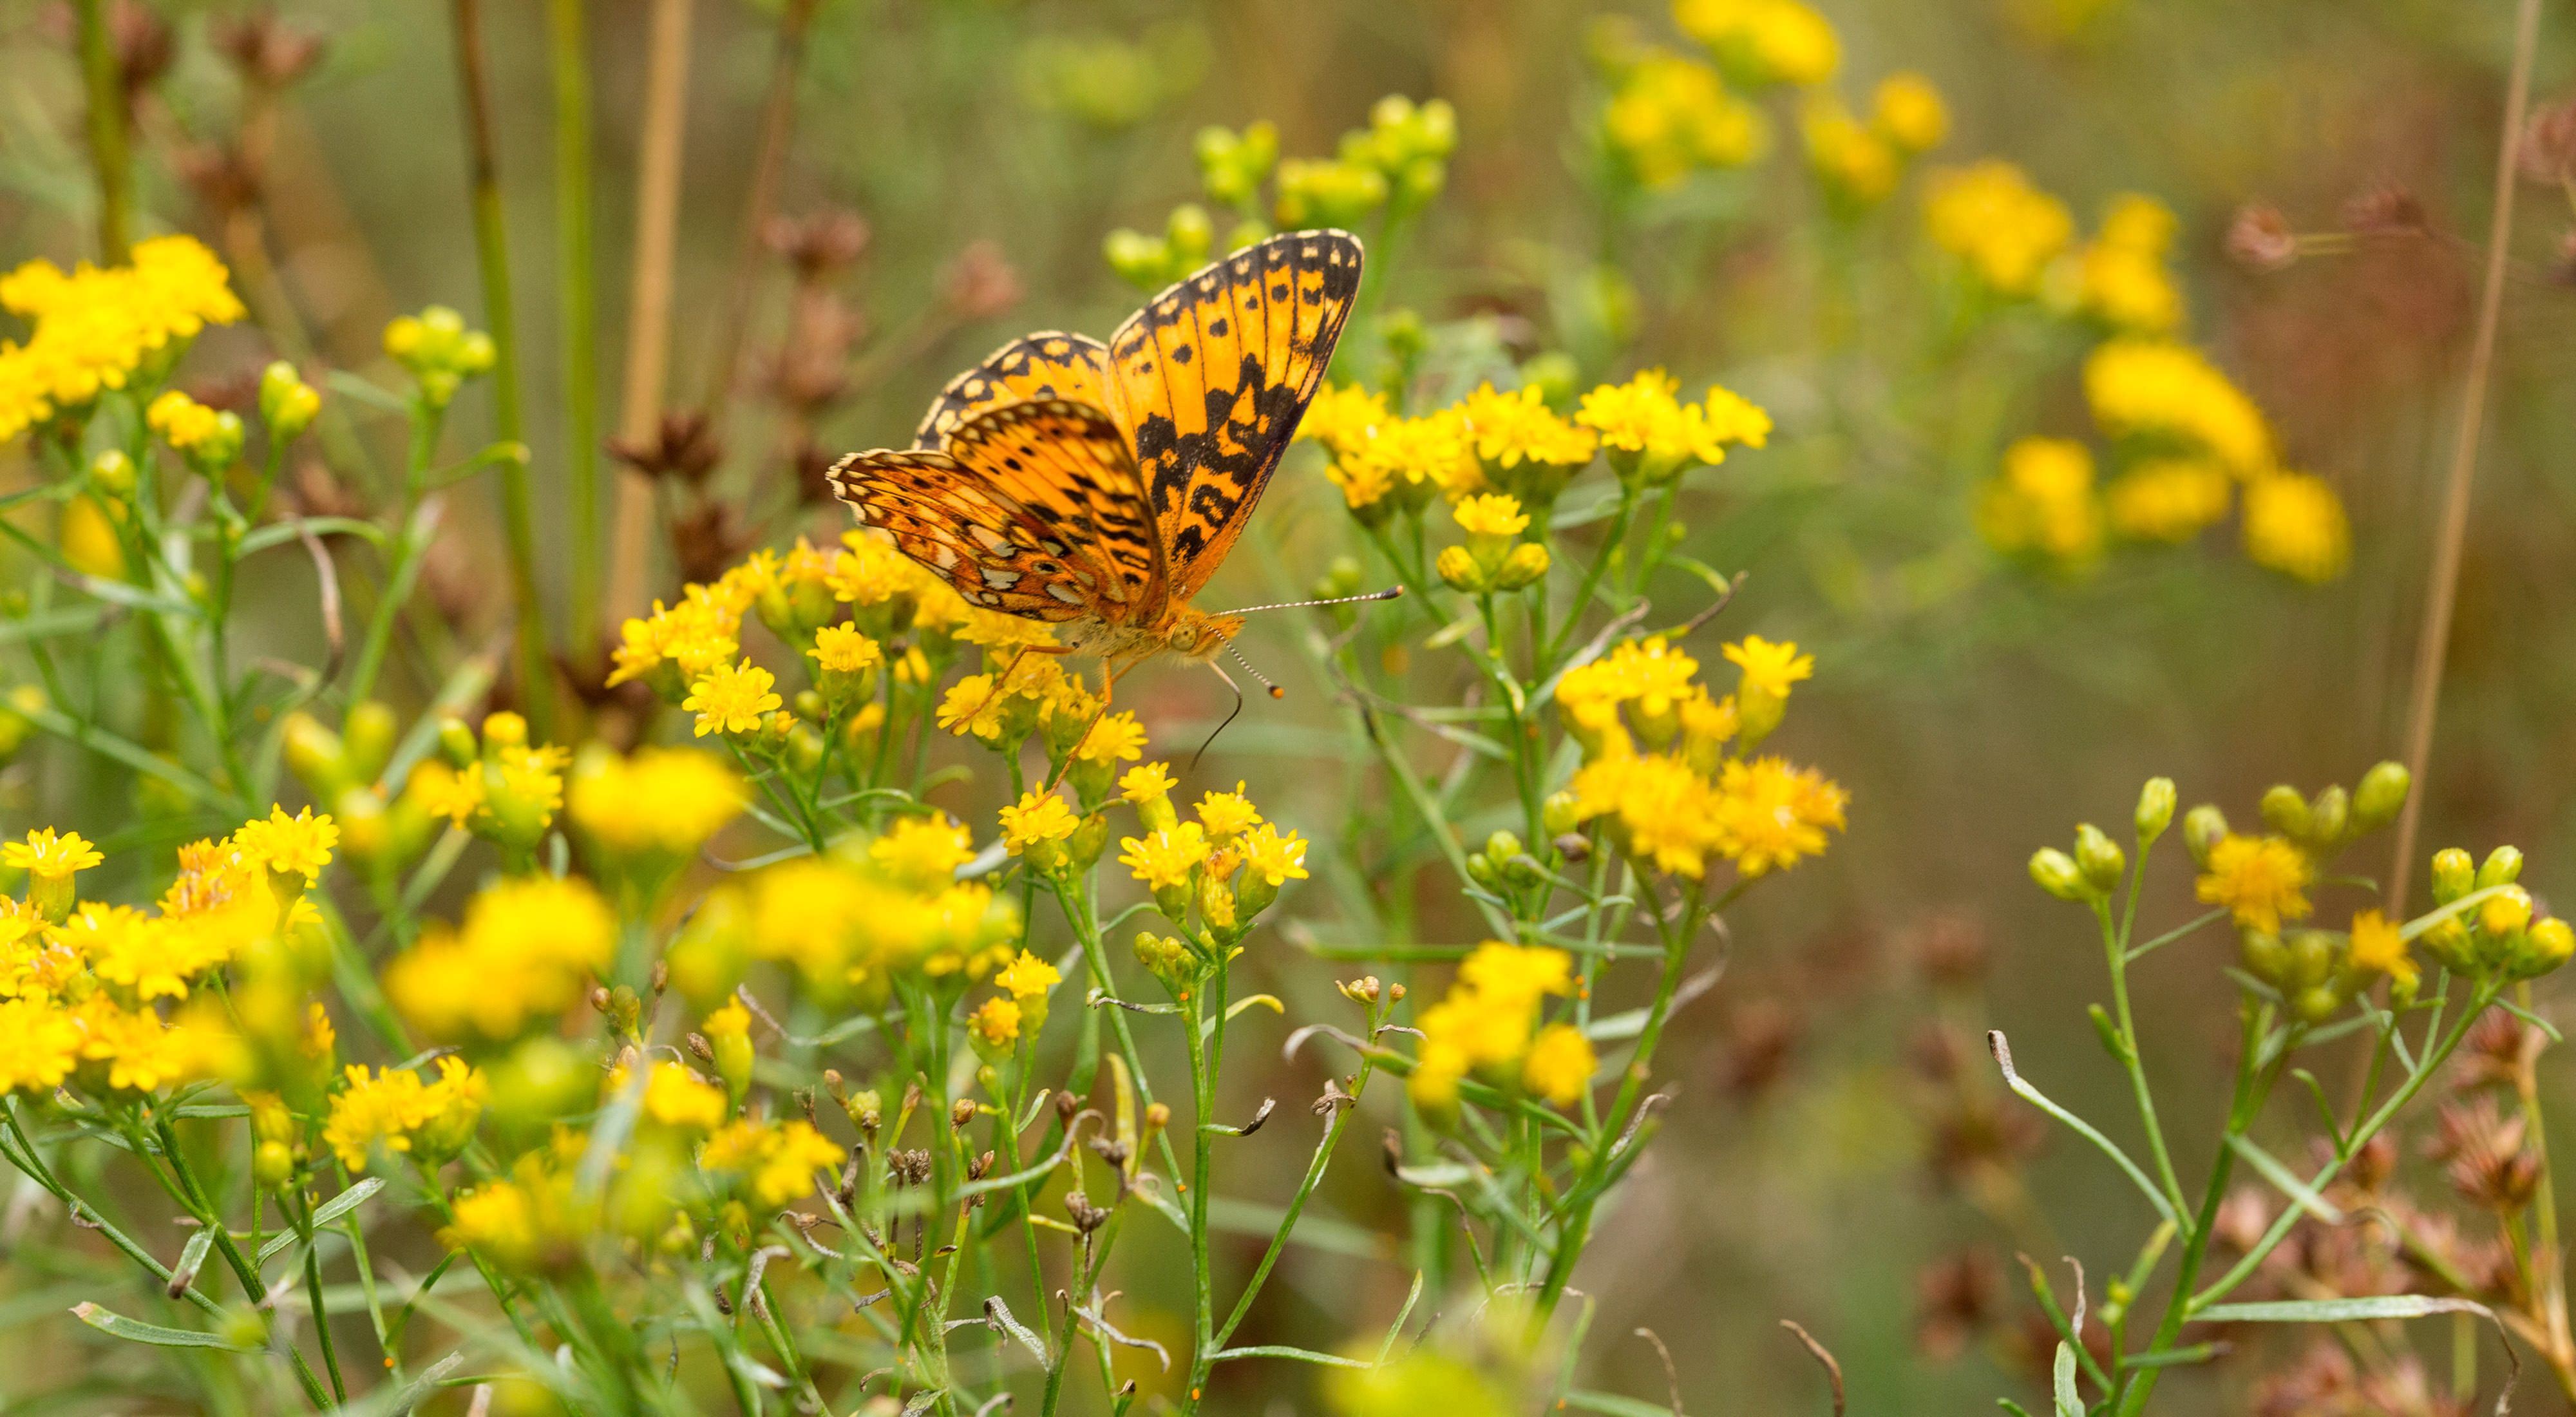 An orange and black butterfly sits on yellow wildflowers.